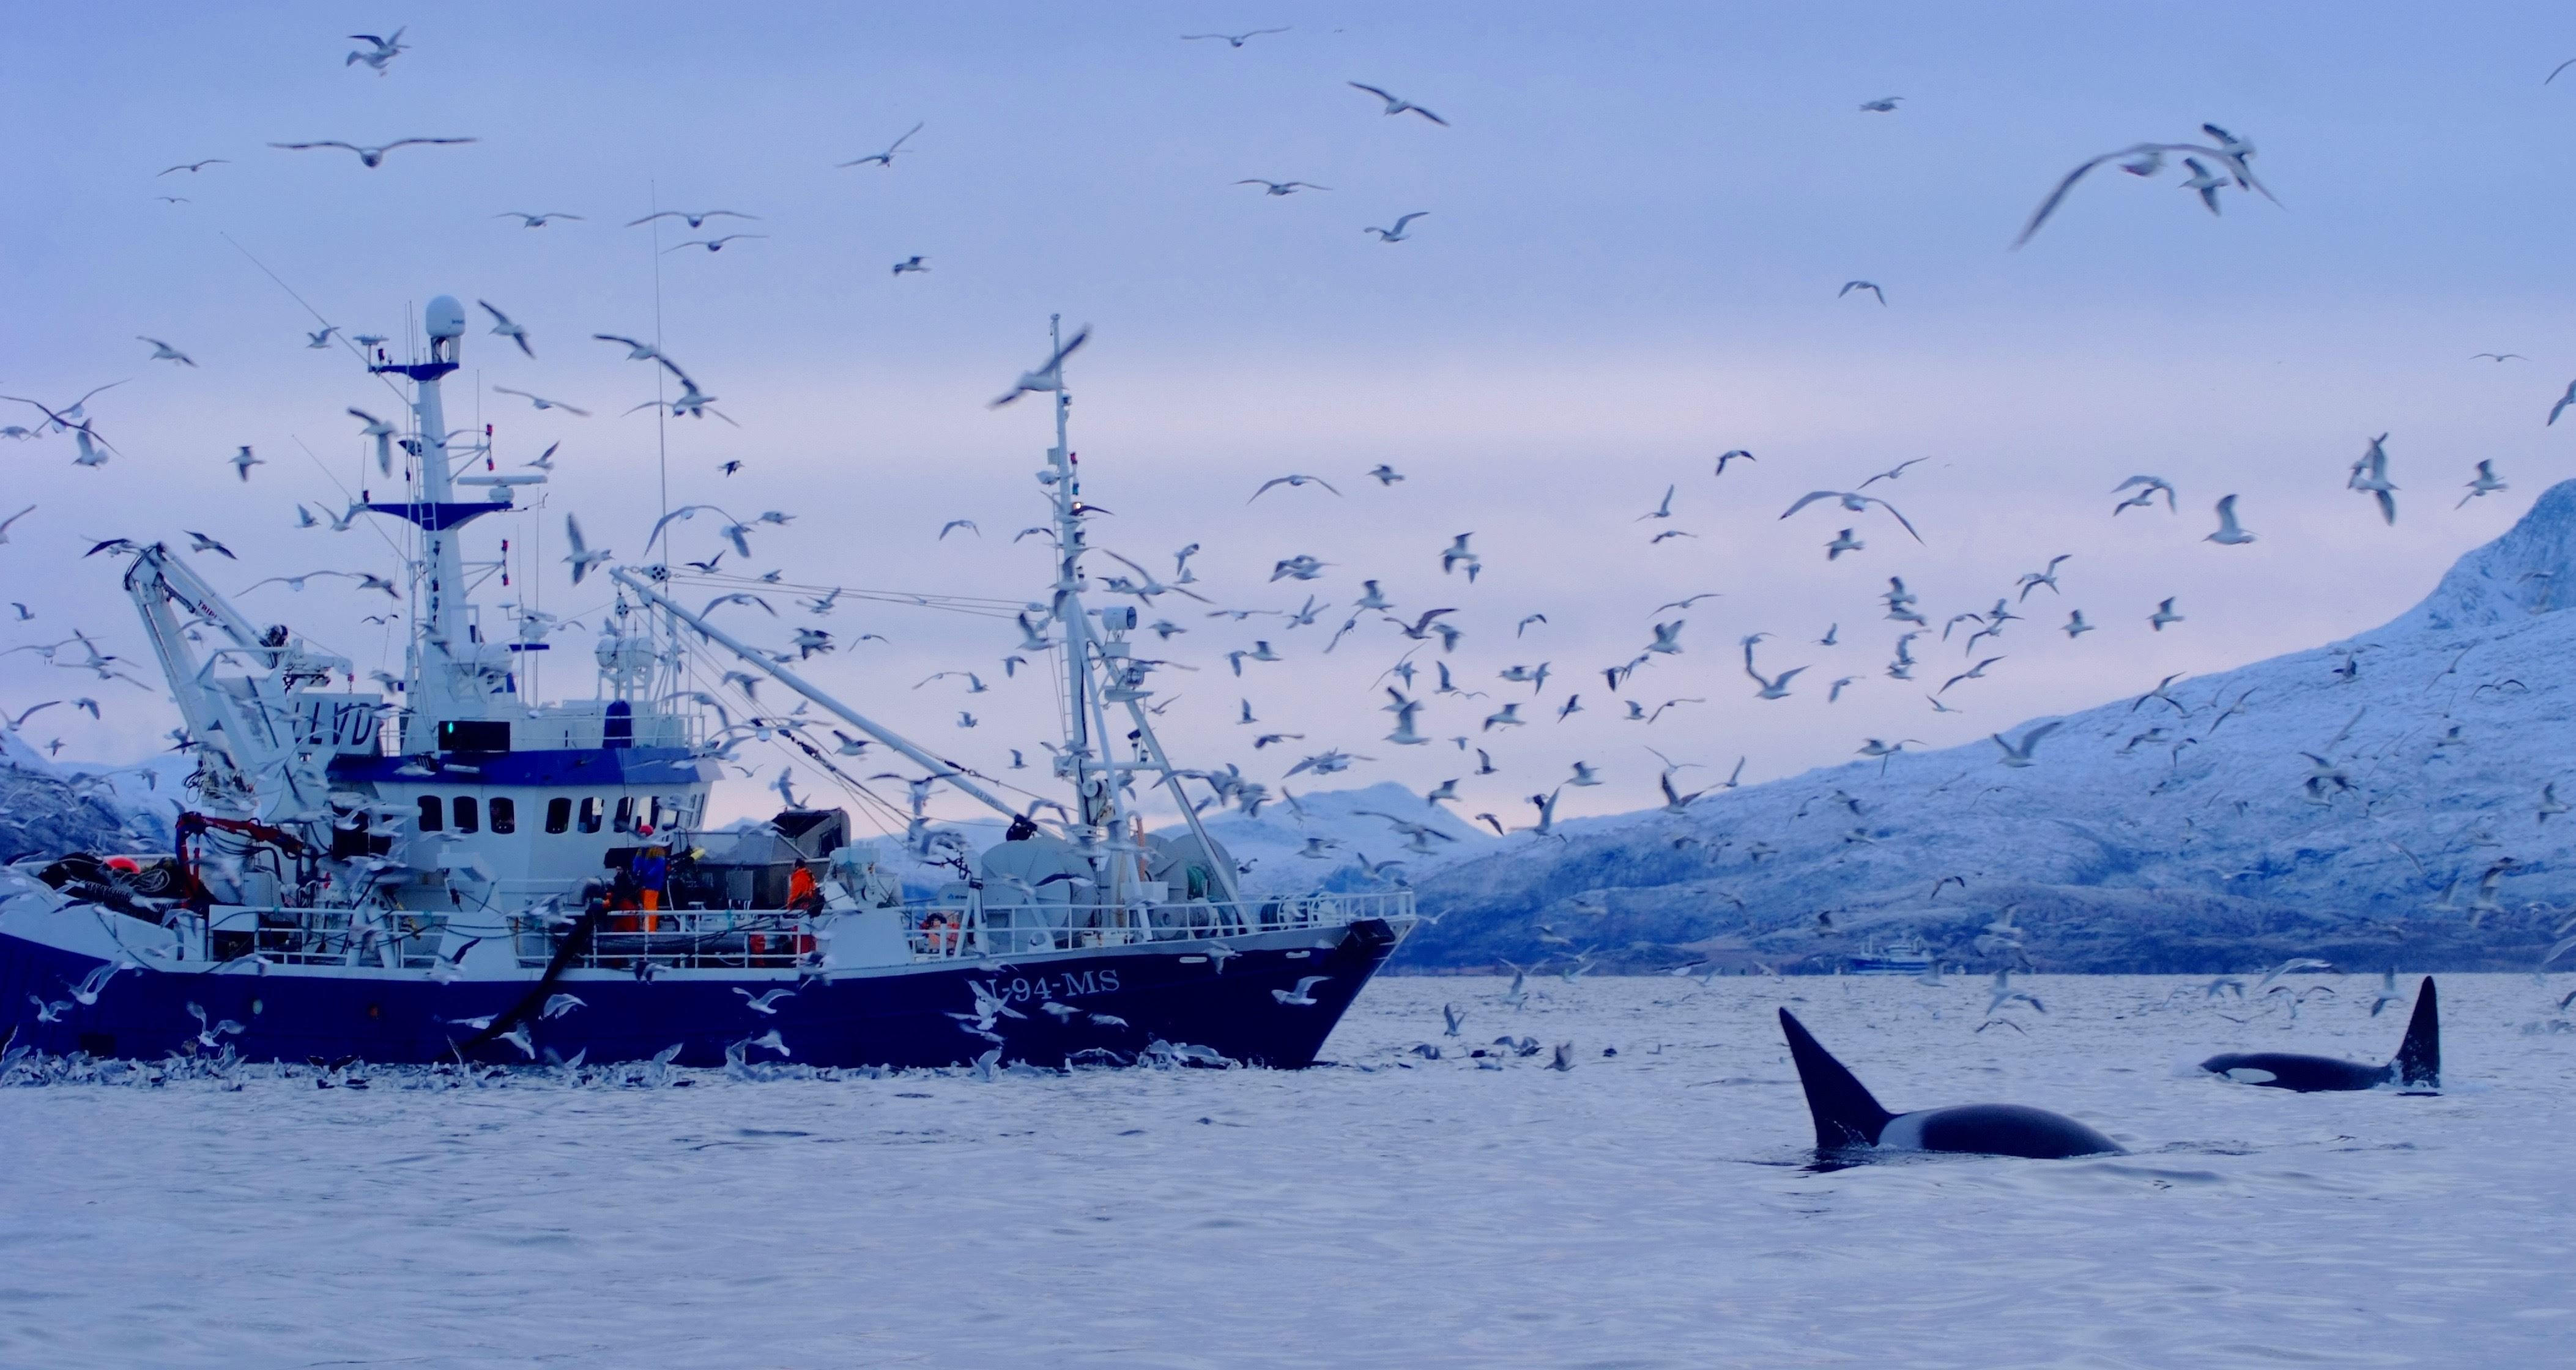 Olivier Pitras,  © 69Nord, 5 days and 6 nights whale watching & Northern Lights trip from Kvaløya with a 75' sailboat - 69Nord Sommarøy Outdoor Center